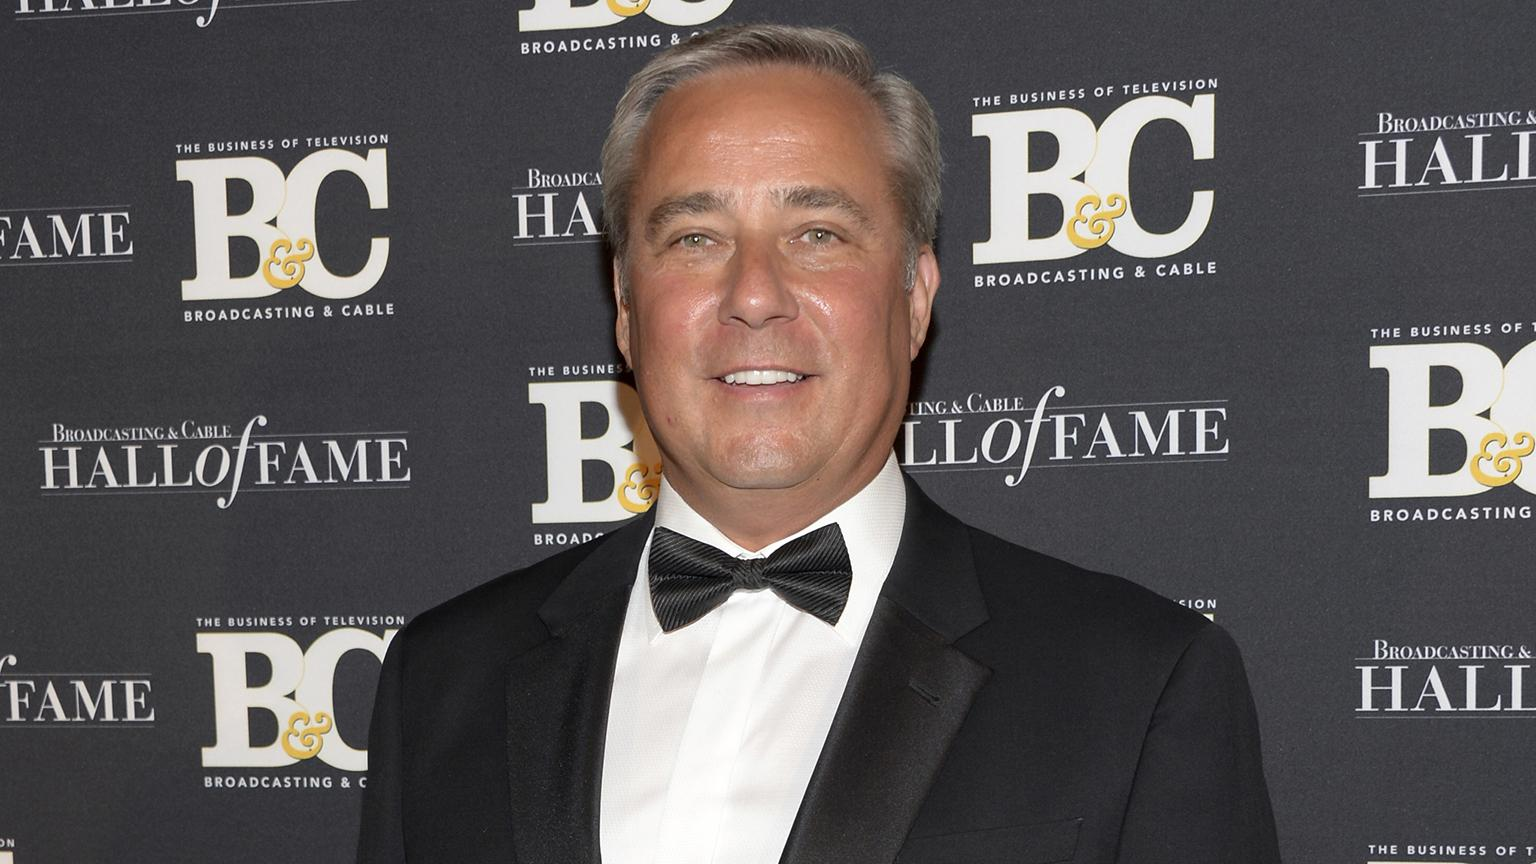 In this Oct. 29, 2014, file photo honoree Perry Sook, Chairman, President and CEO of Nexstar Broadcasting Group, attends the 24th Annual Broadcasting and Cable Hall of Fame Awards at the Waldorf-Astoria in New York. (Evan Agostini / Invision /AP File Photo)